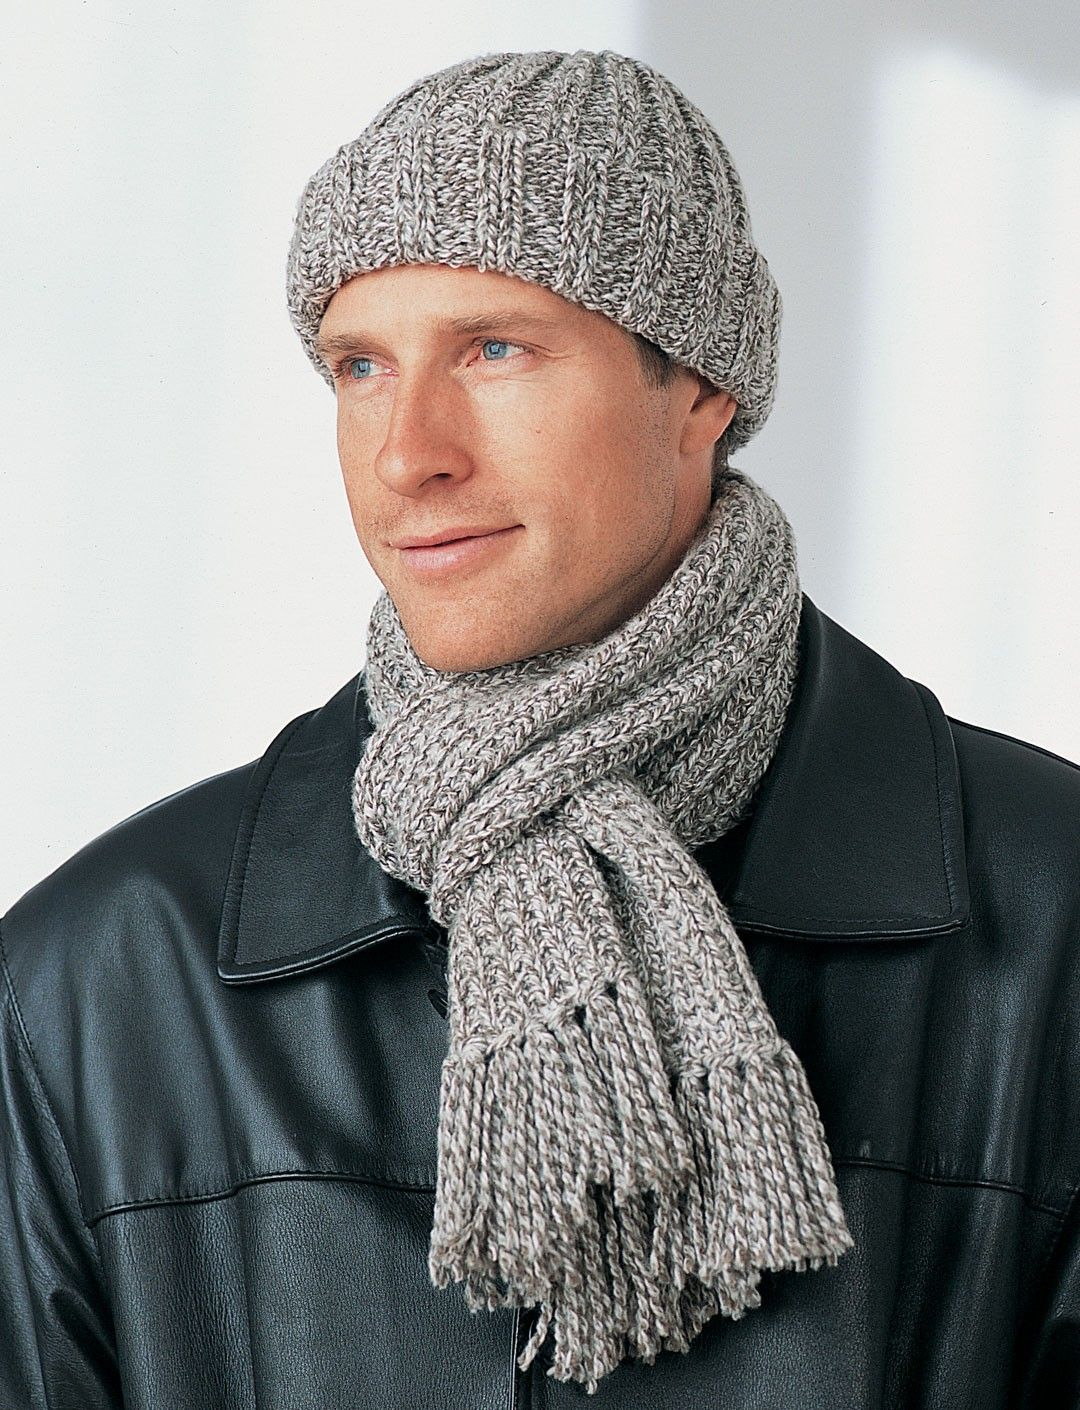 Yarnspirations.com - Bernat Men s Hat and Scarf - Patterns ... bb741d78fc09